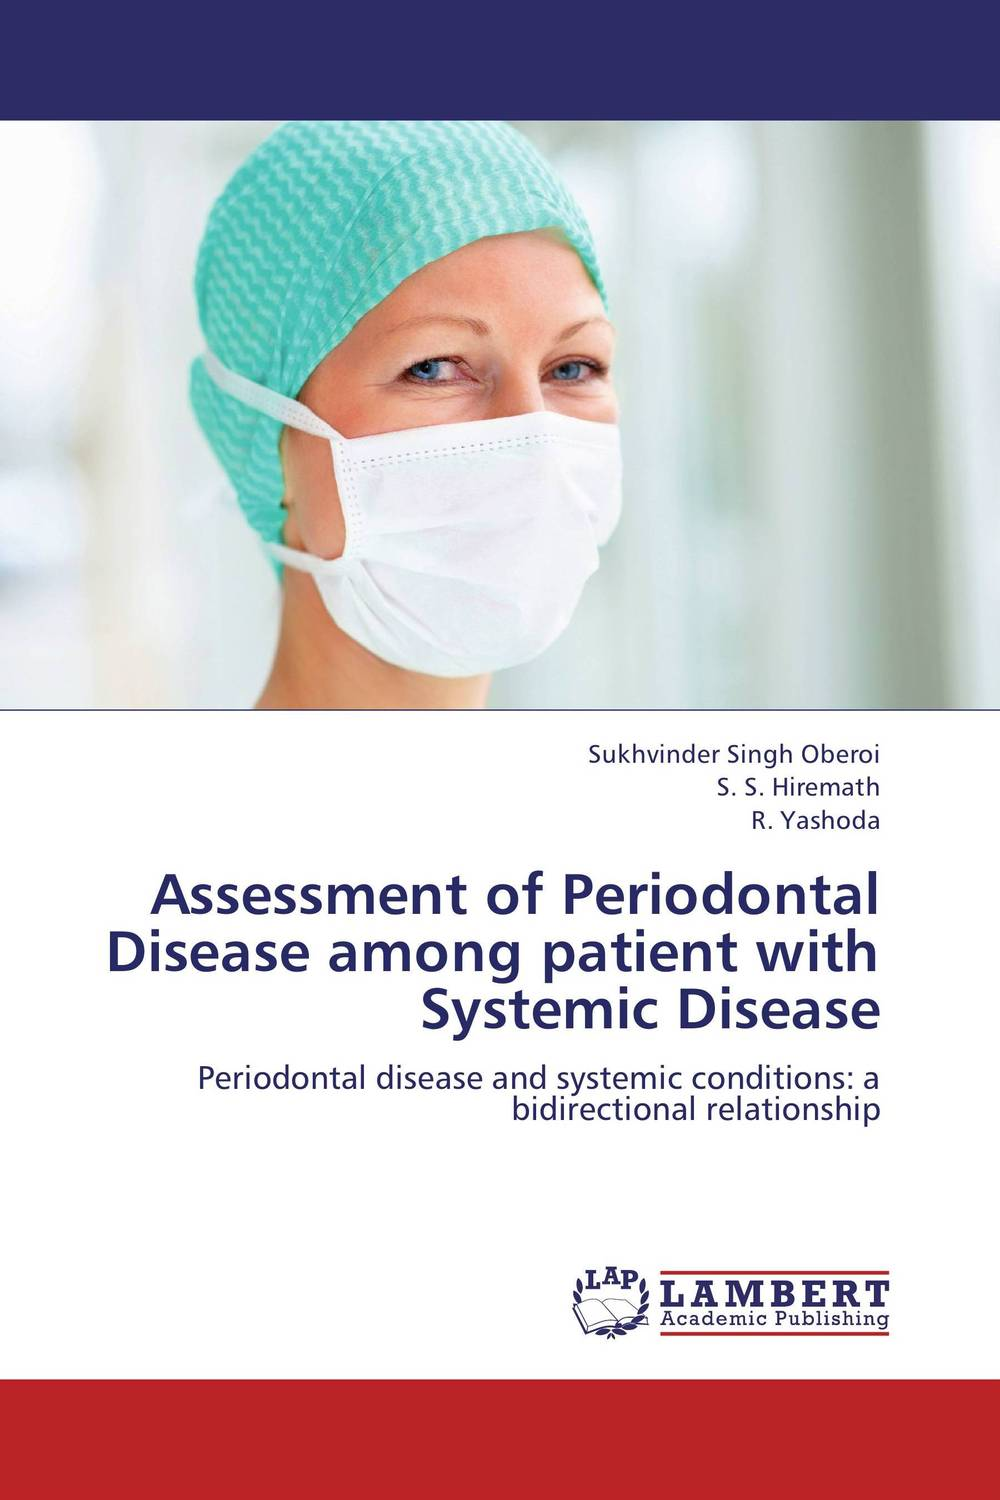 Assessment of Periodontal Disease among patient with Systemic Disease new arrival classification of periodontal diseases teeth model dental patient communication model process of periodontal disease